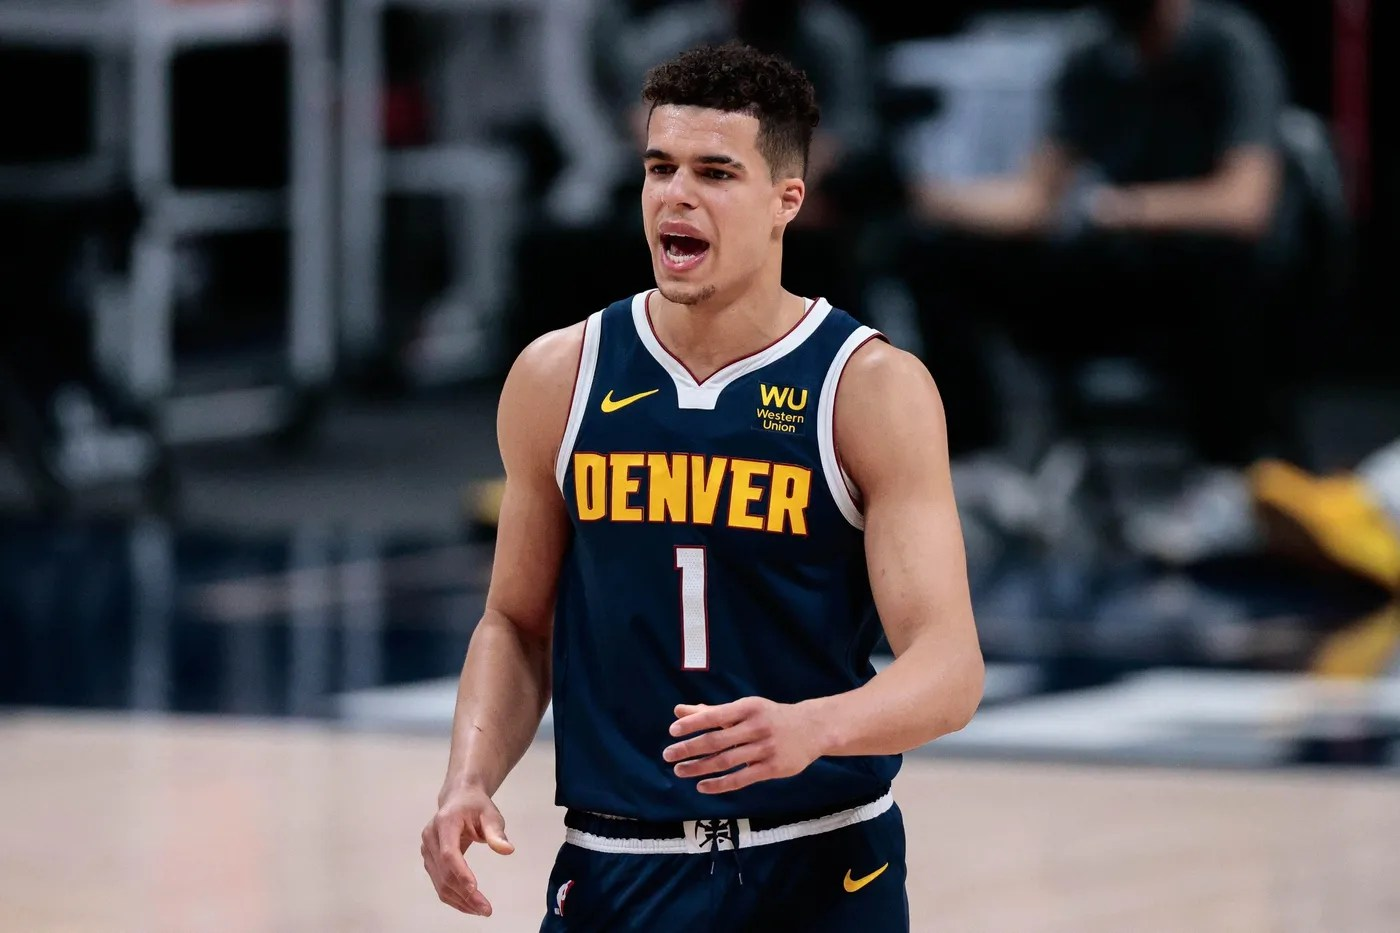 Apr 29, 2021; Denver, Colorado, USA; Denver Nuggets forward Michael Porter Jr. (1) yells from the court in the second quarter against the Toronto Raptors at Ball Arena. Mandatory Credit: Isaiah J. Downing-USA TODAY Sports